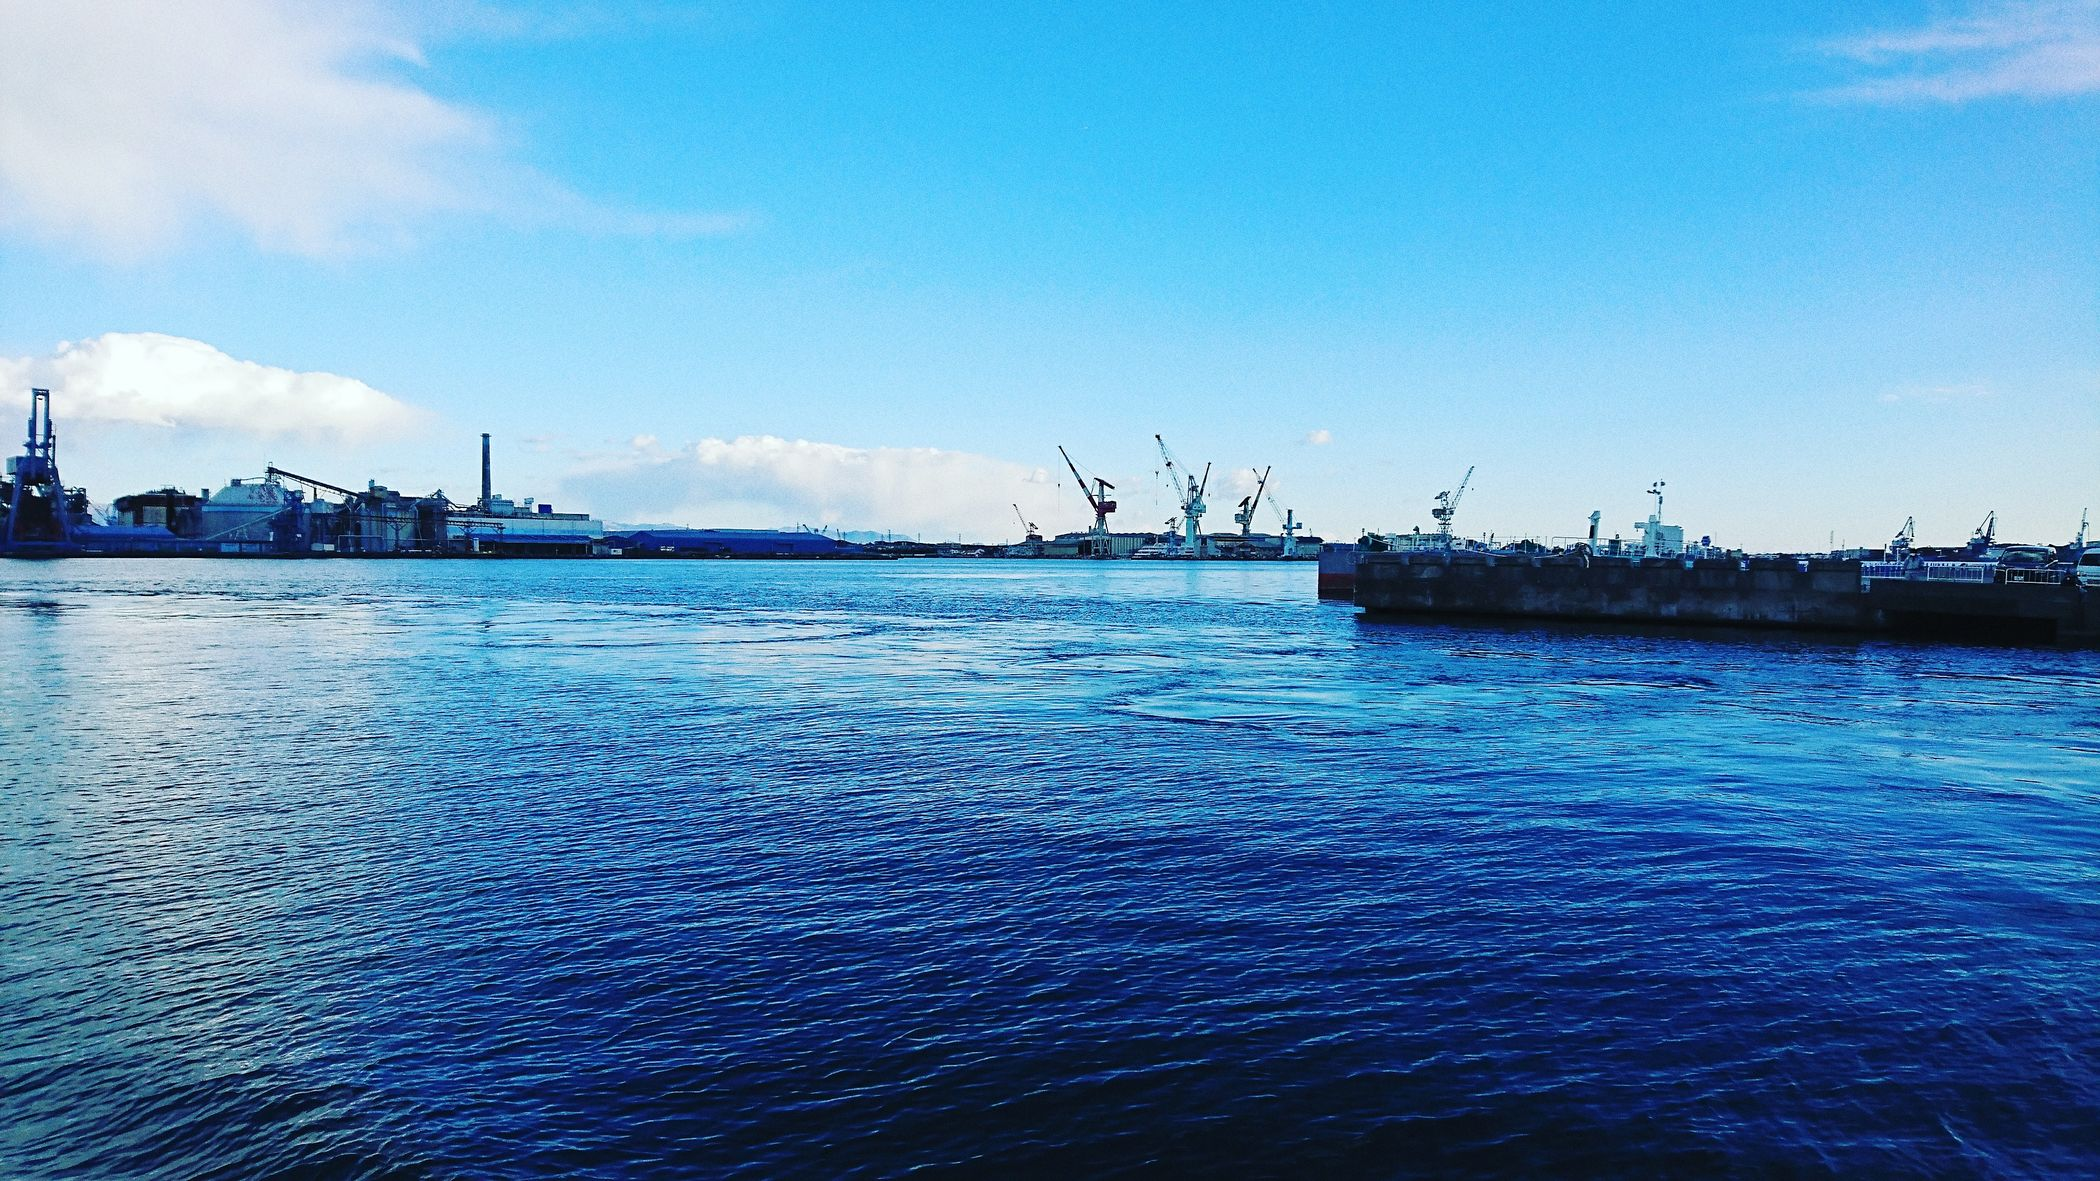 Sea Water Industry Outdoors Sky Business Finance And Industry Day No People Commercial Dock Blue Harbor Nature Factory Nautical Vessel Building Exterior Beauty In Nature 太平洋 Japan Tranquility 港 波 クレーン